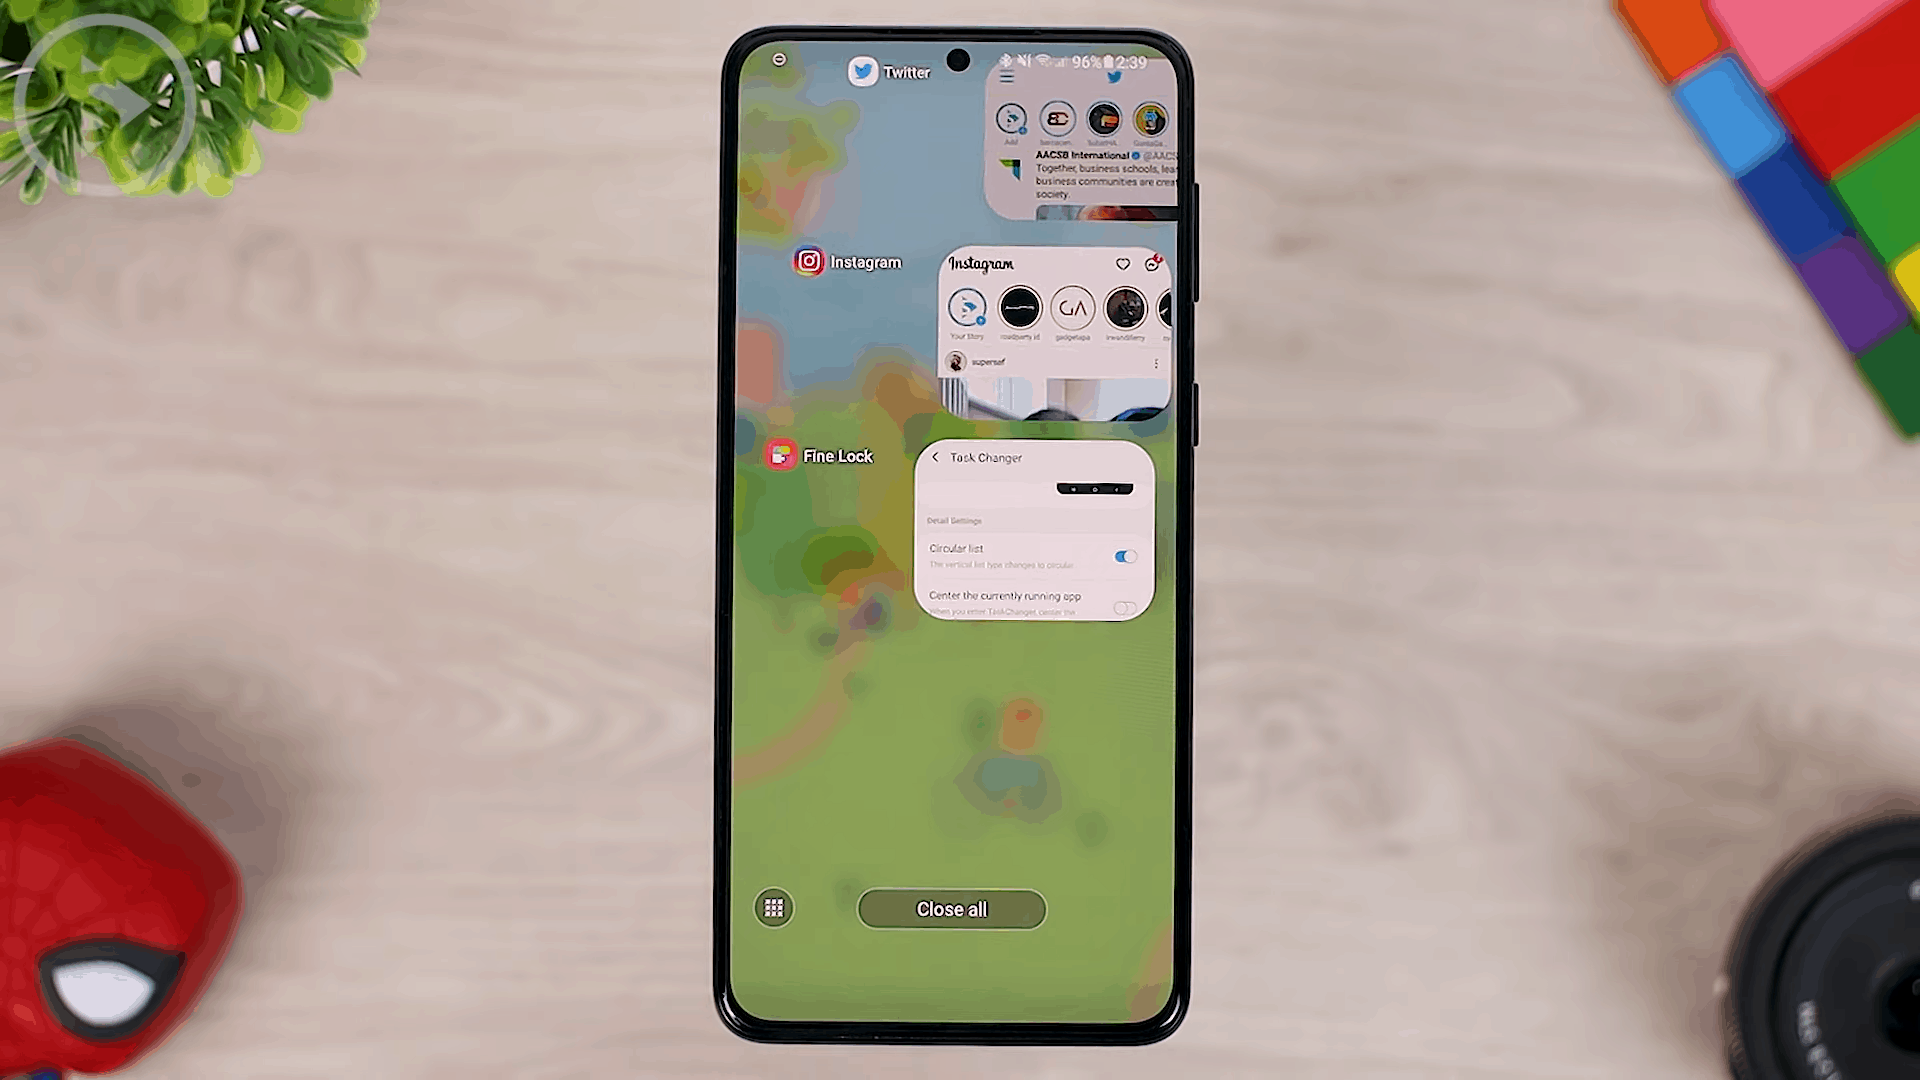 Show Search Bar on Task Changer - 8 COOL Features in the LATEST Good Lock Update April 2021